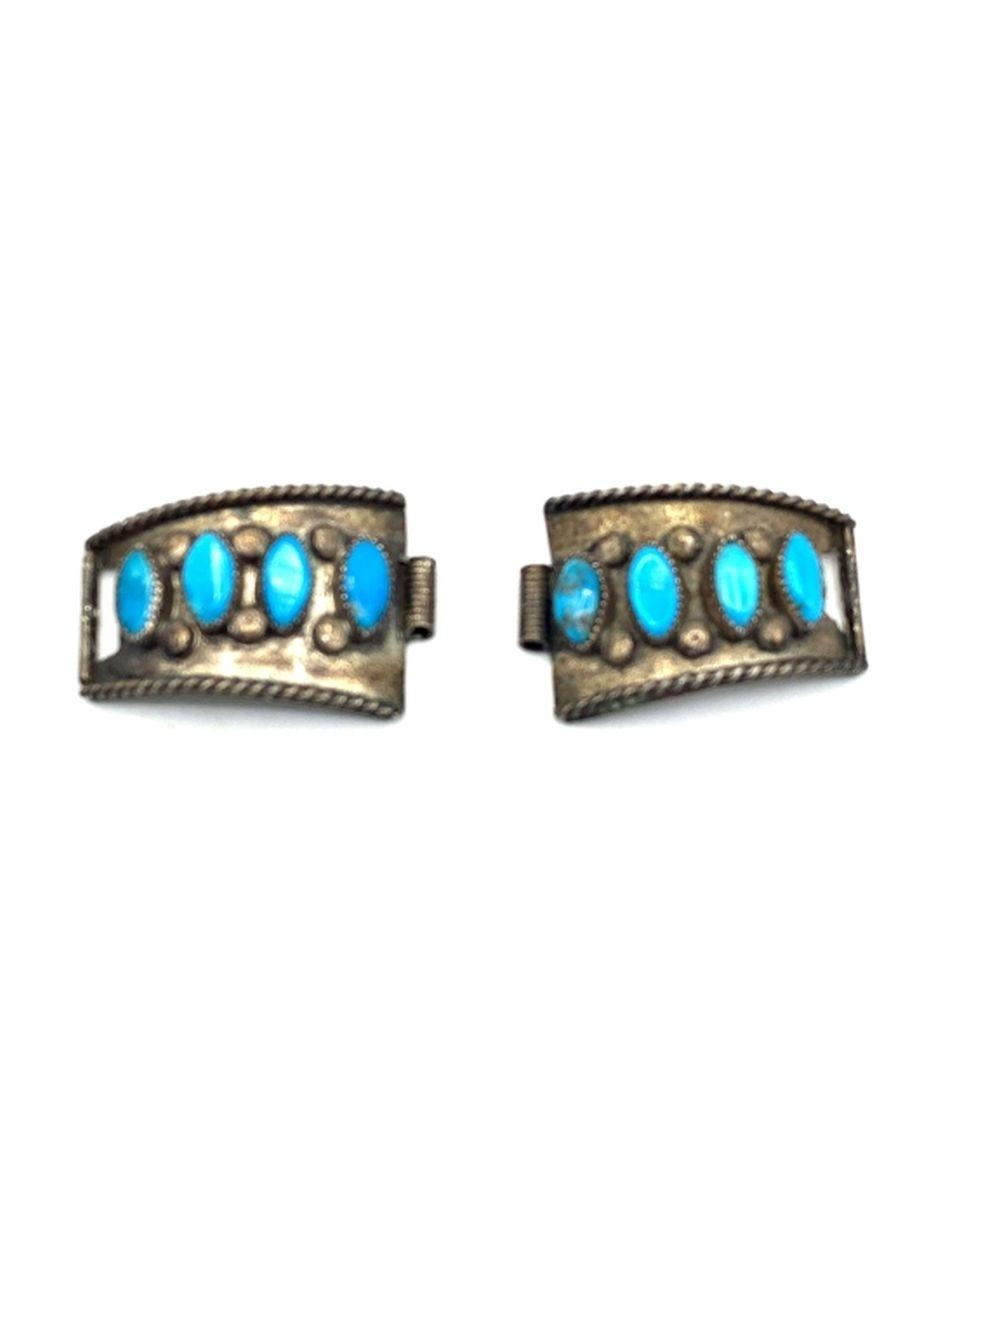 S. M. BAHE WATCH TIPS TURQUOISE